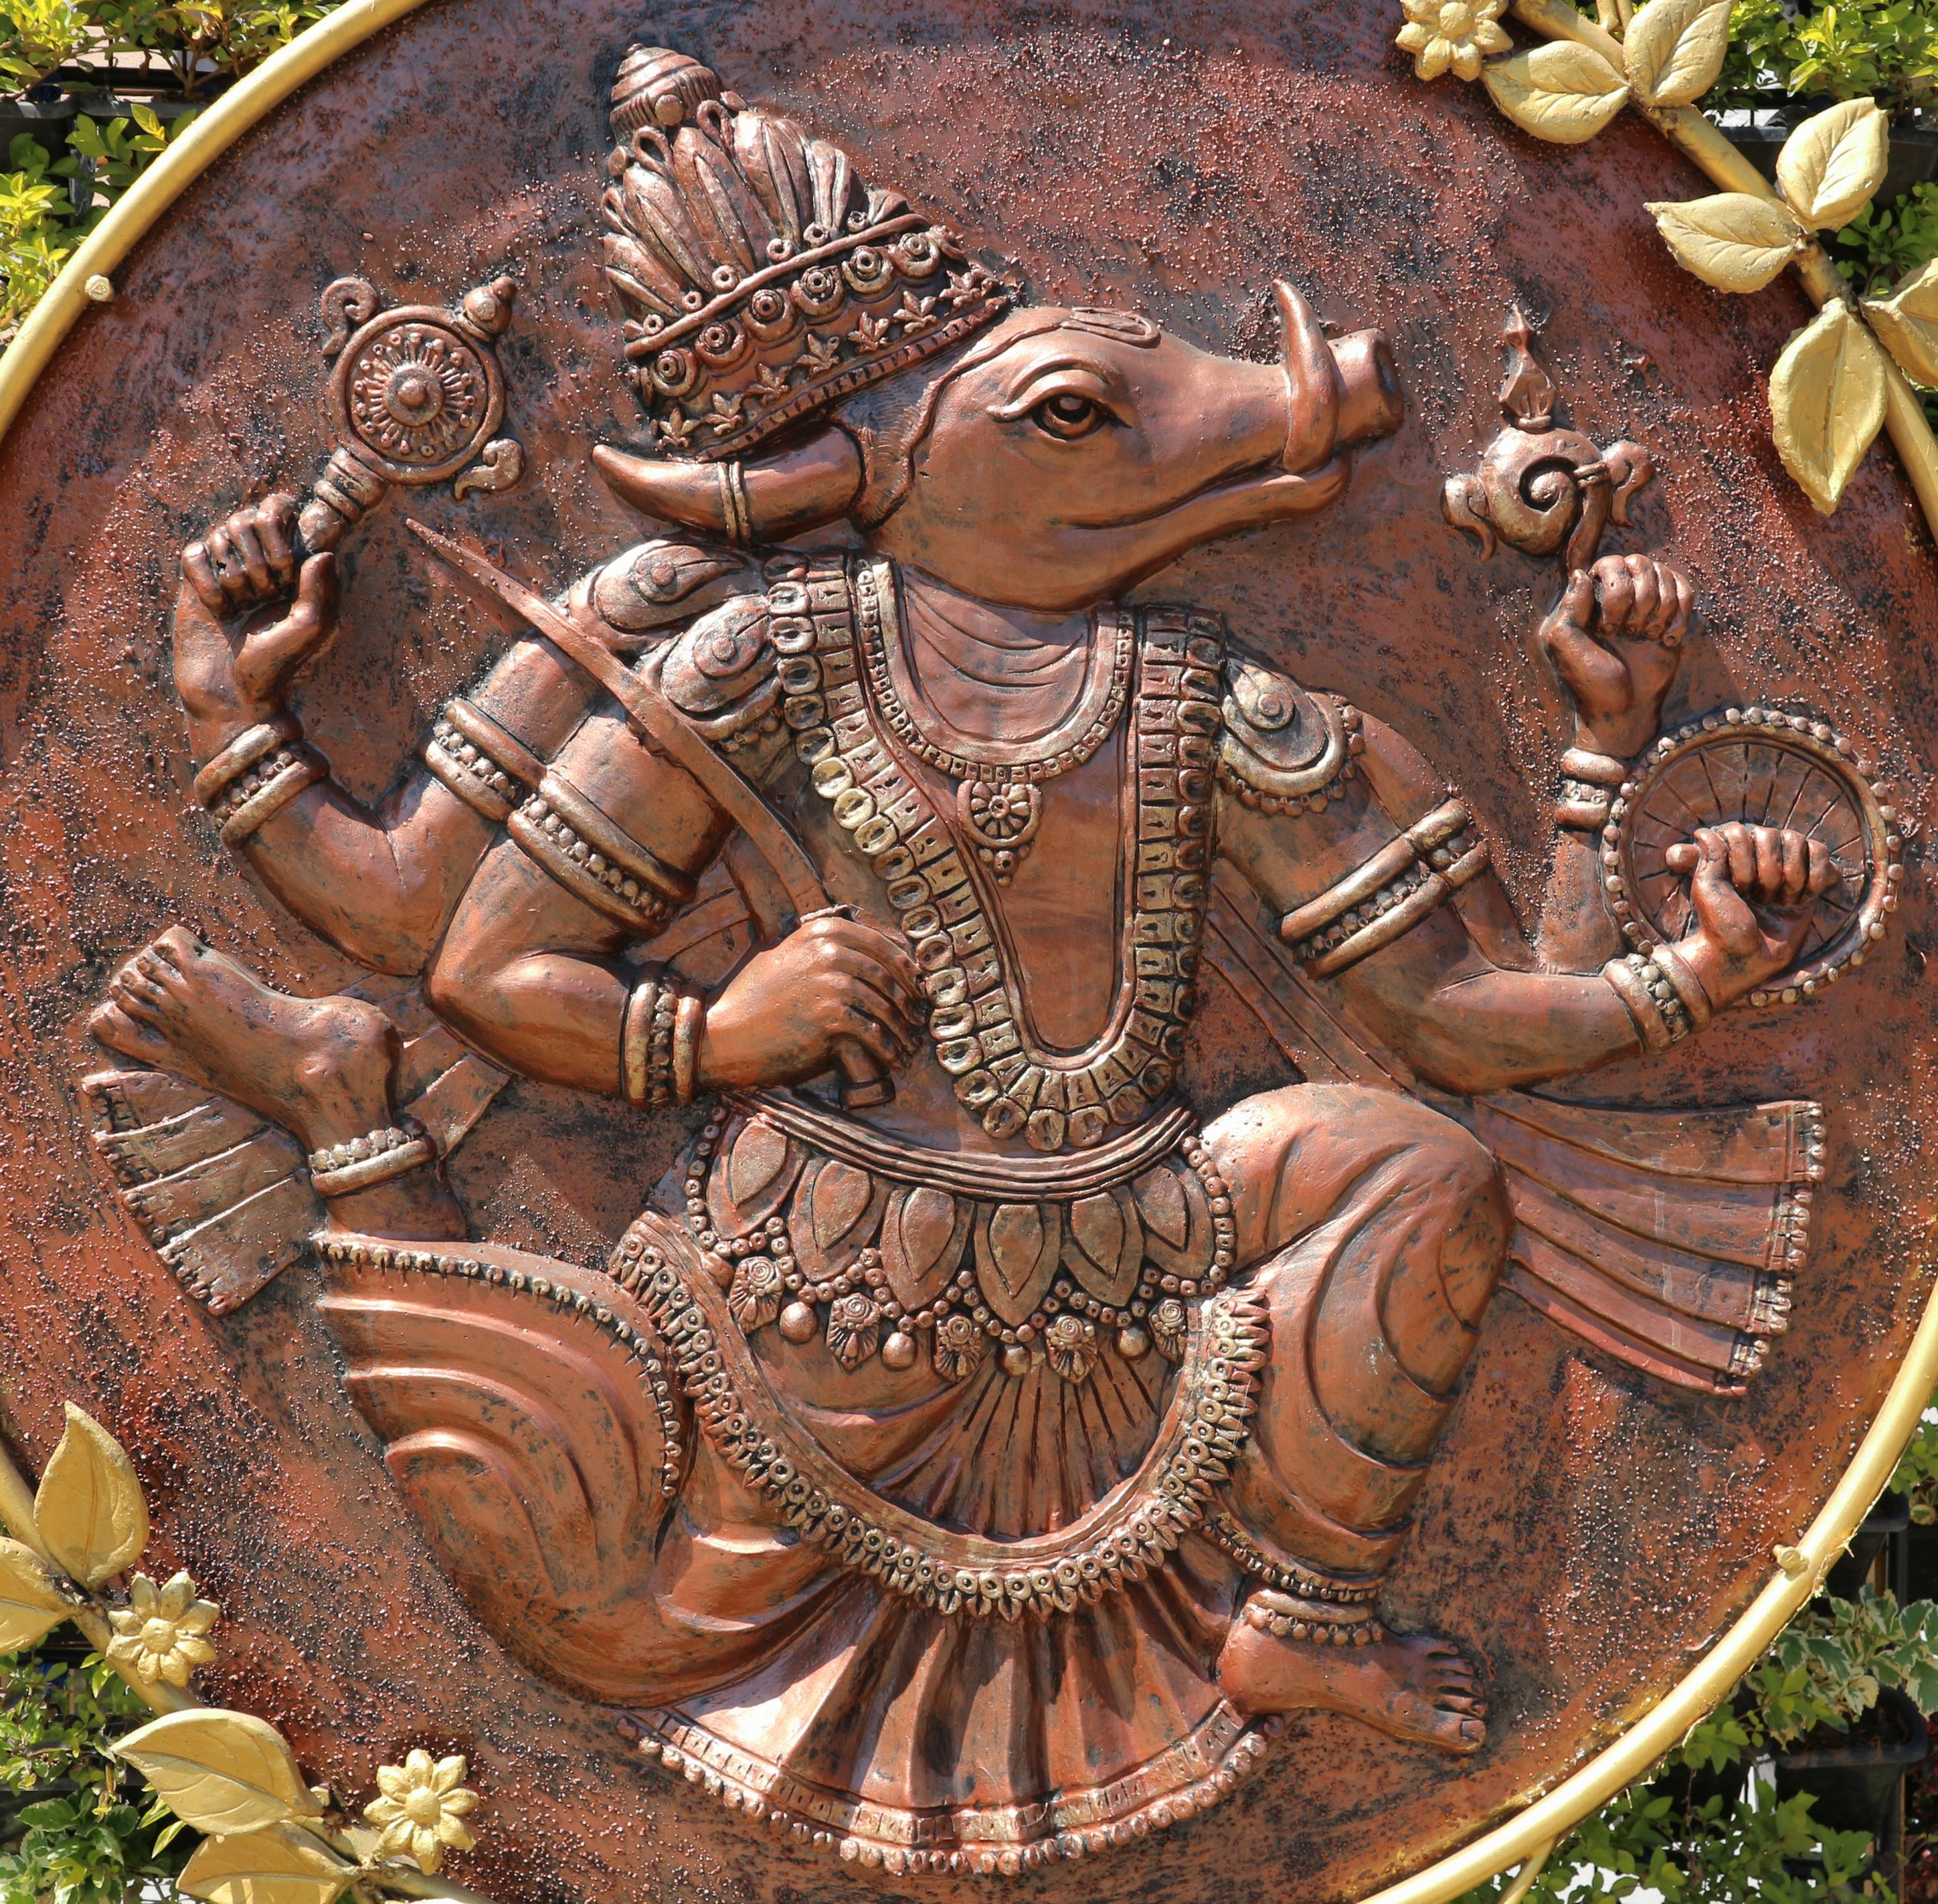 Lord Varaha - Avatar Vishnu. Photo: d odin/Shutterstock